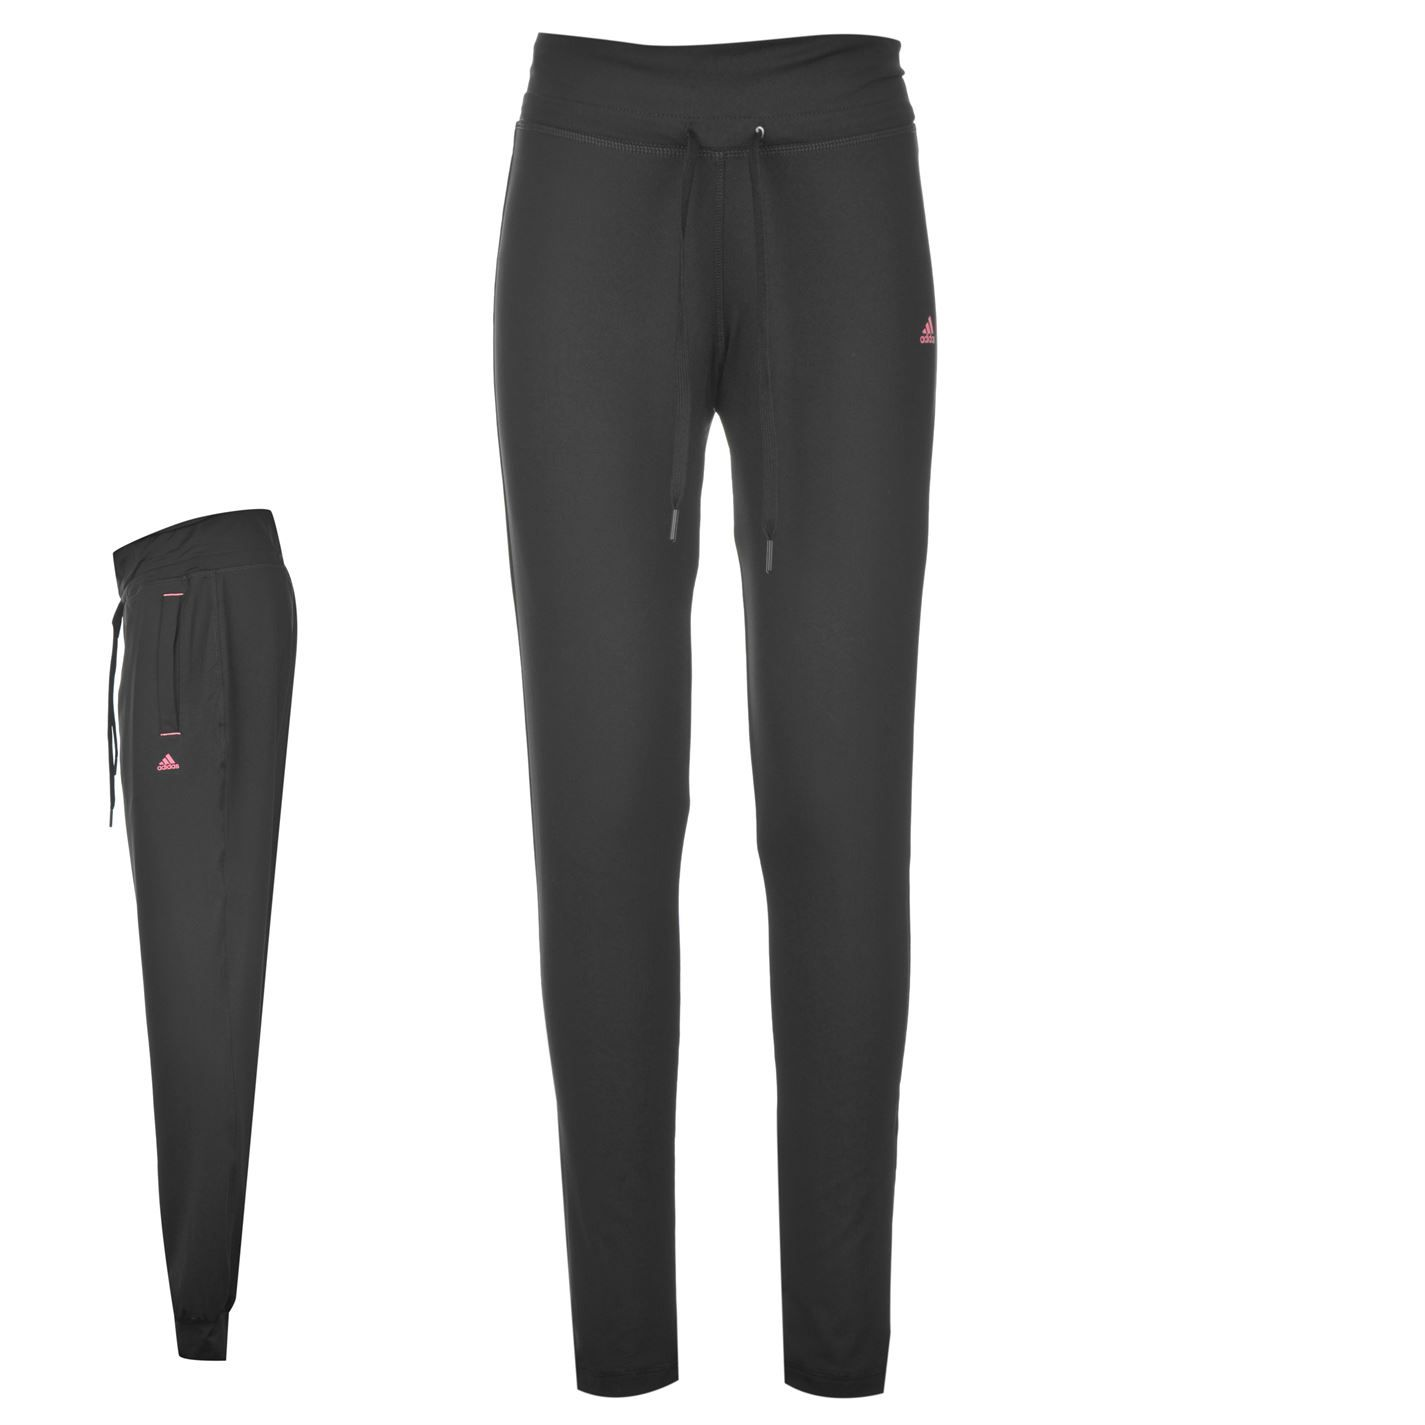 d70ab51c416fb Black/pink Adidas Clima Yoga tights. | Yoga - Clothes | Gym clothes ...